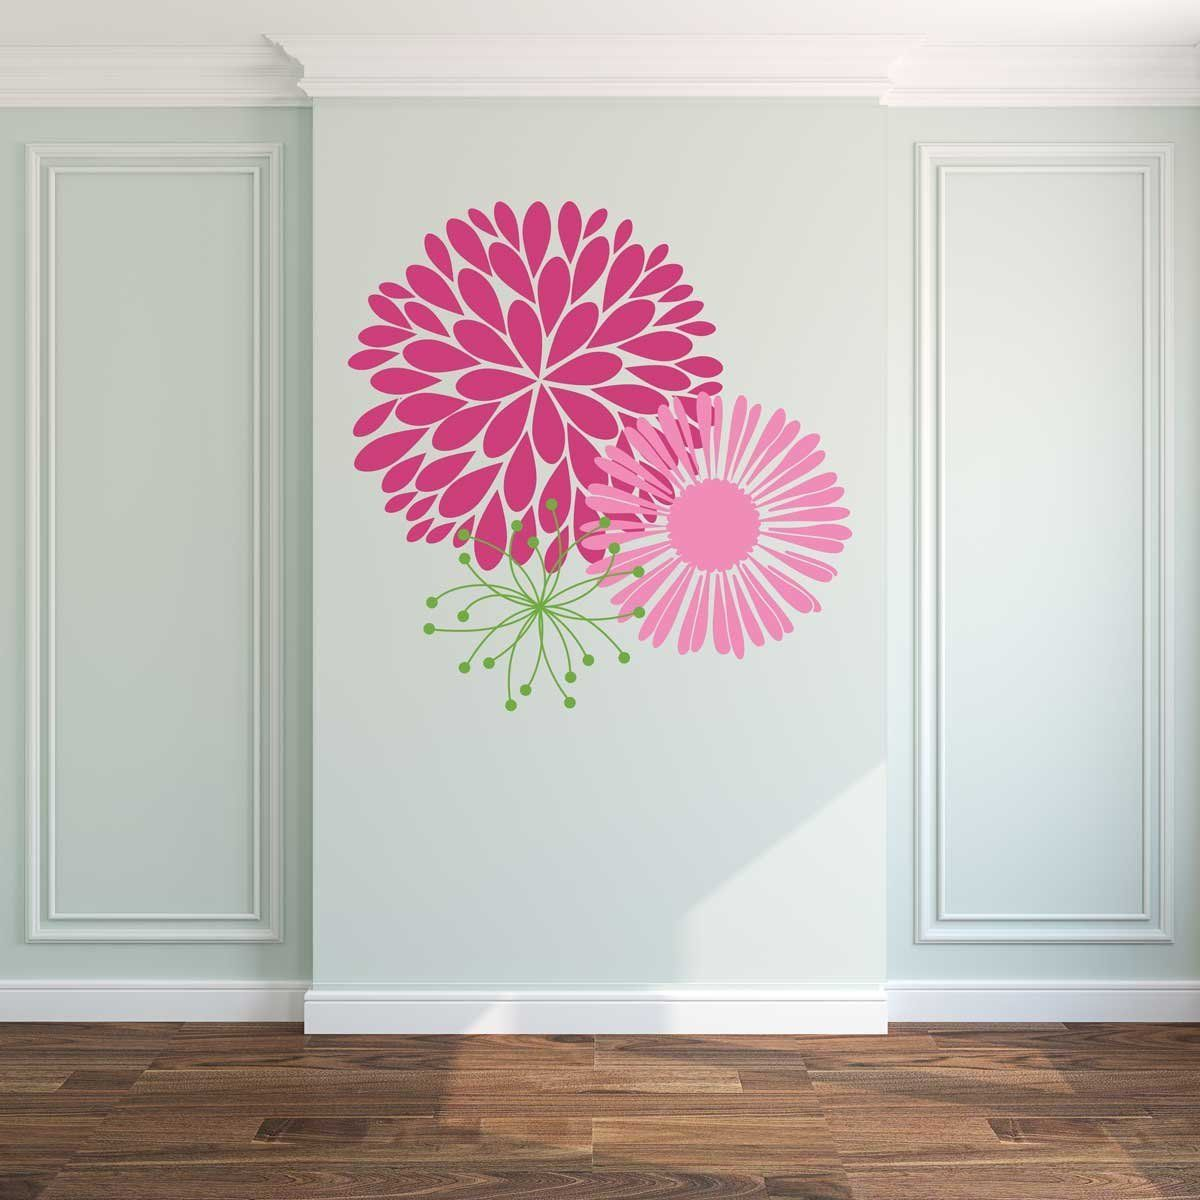 Large flower wall stickers set of 3 wb005 guild product large flower wall stickers set of 3 wb005 amipublicfo Gallery